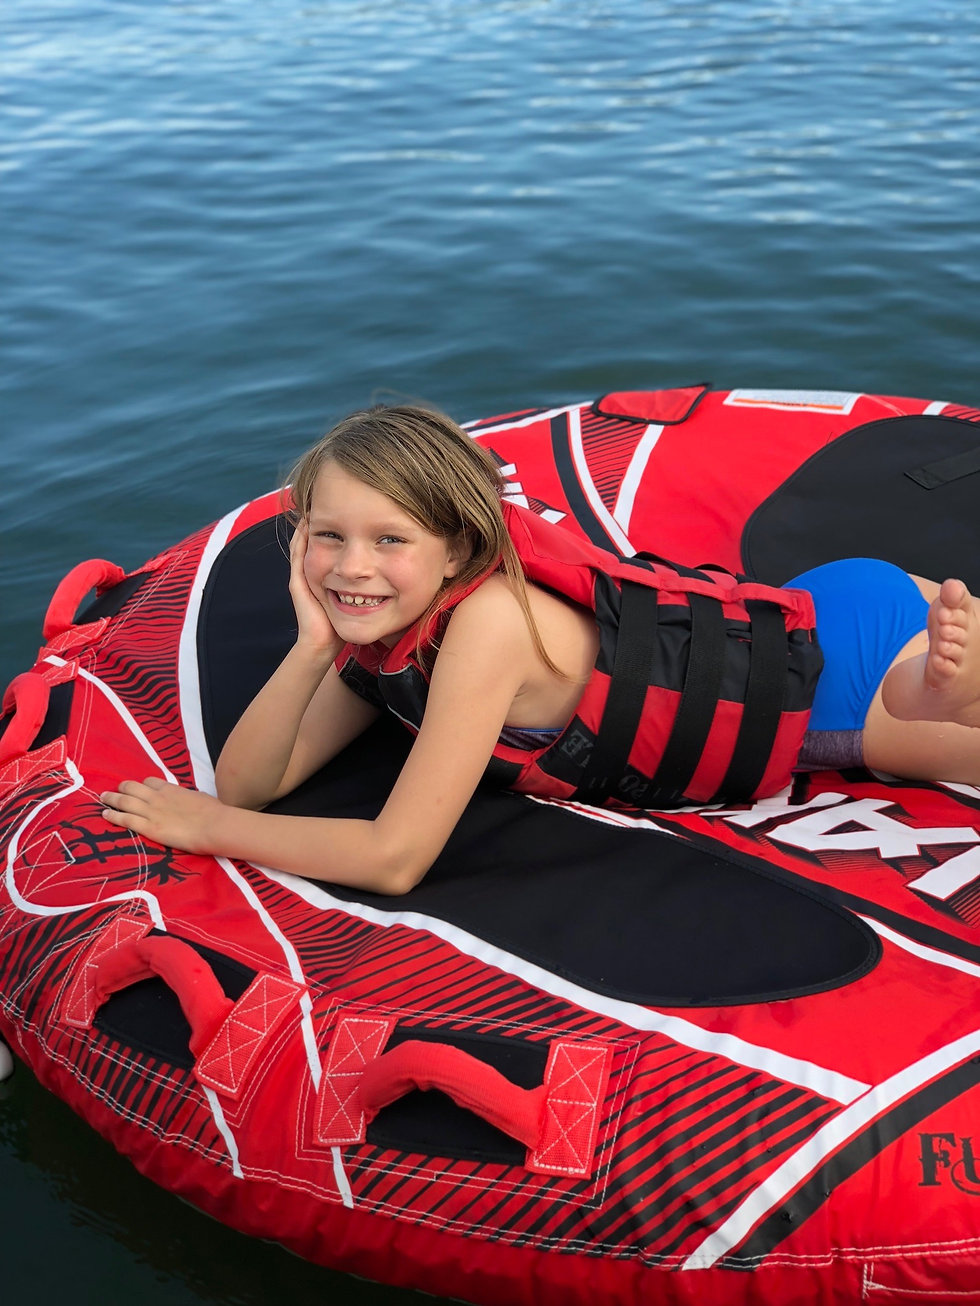 lake norman tube rentals